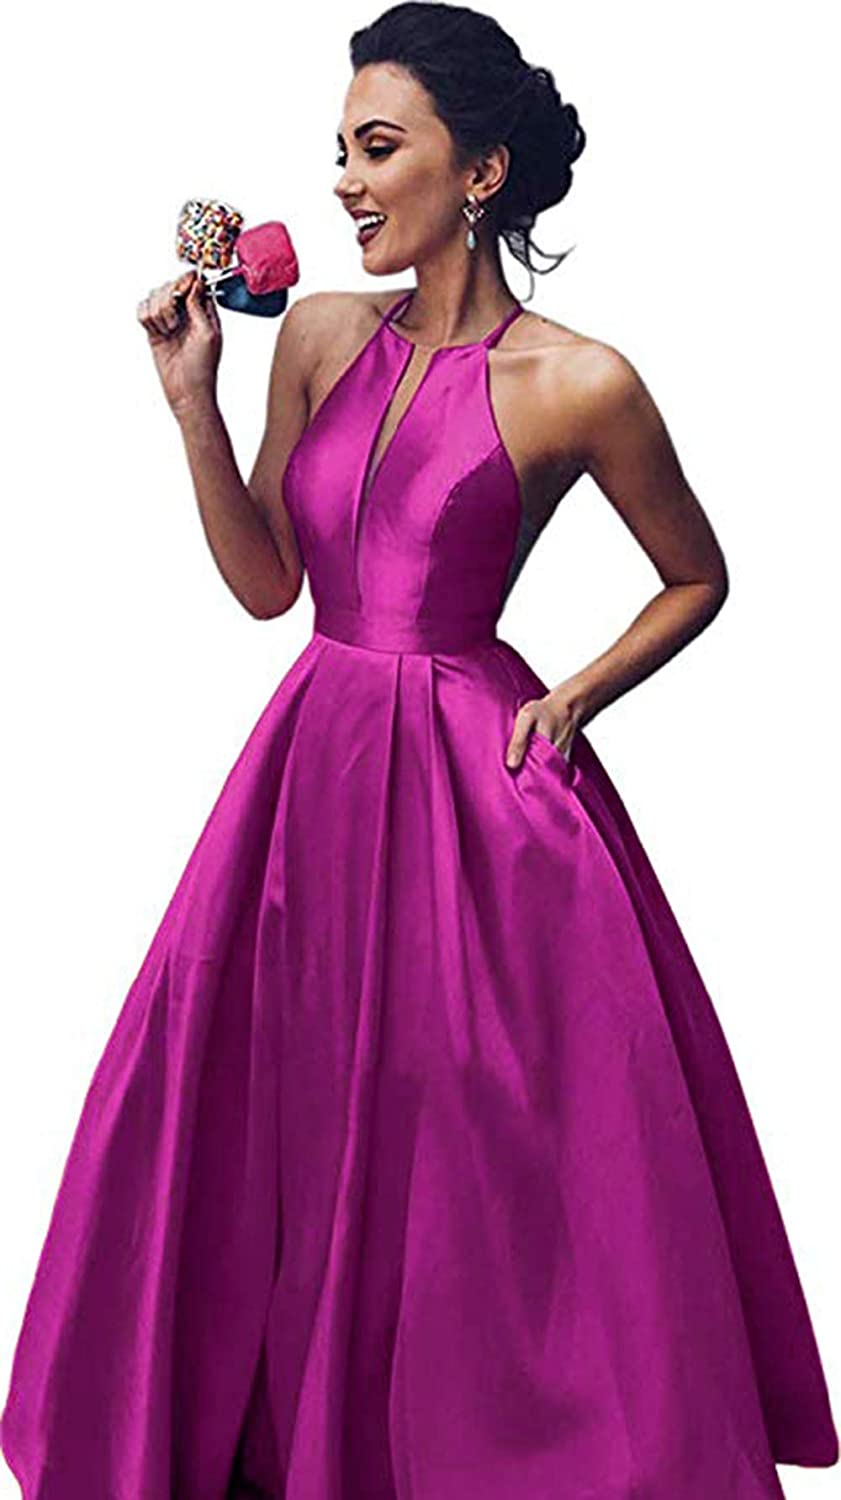 Fuchsia Rmaytiked Women's Halter Prom Dresses Long 2019 Satin A Line Formal Evening Ball Gowns with Pockets